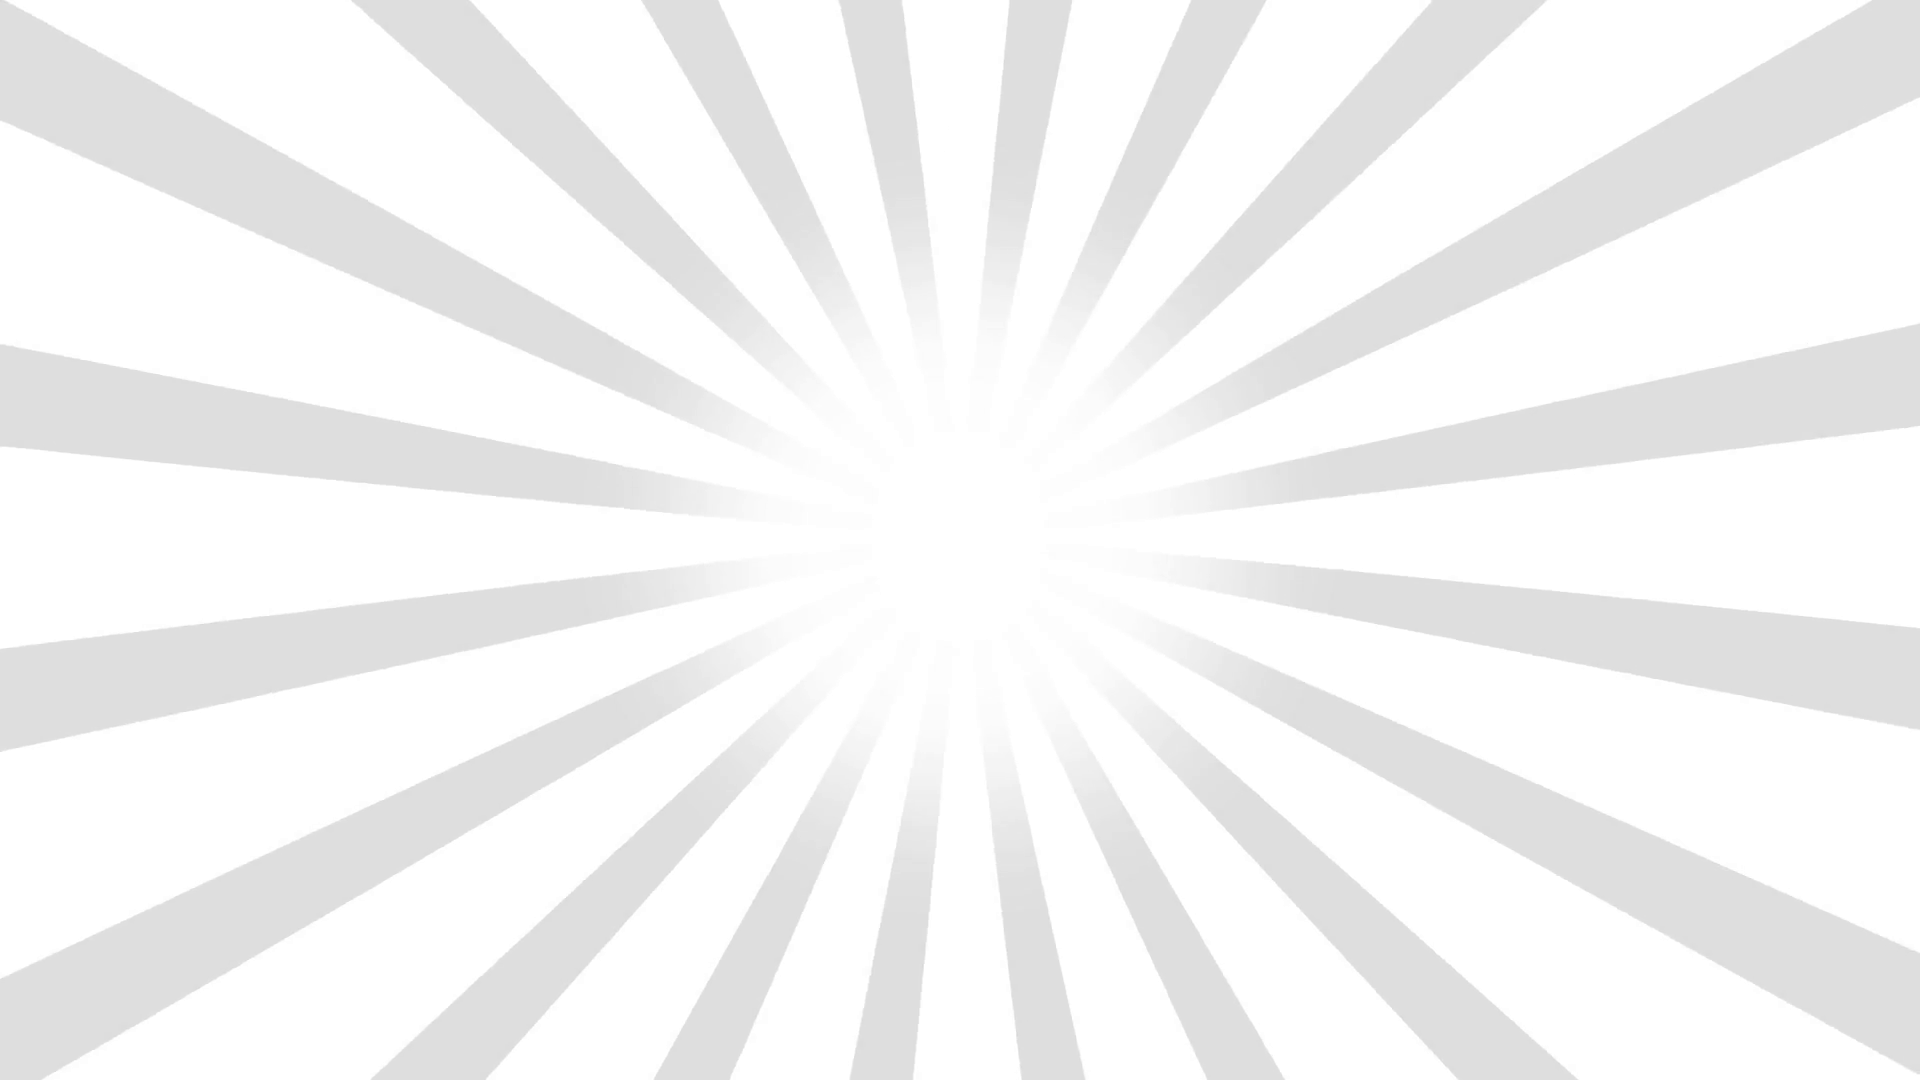 1920x1080 White And Gray Burst Vector Background. Cartoon Comic Background